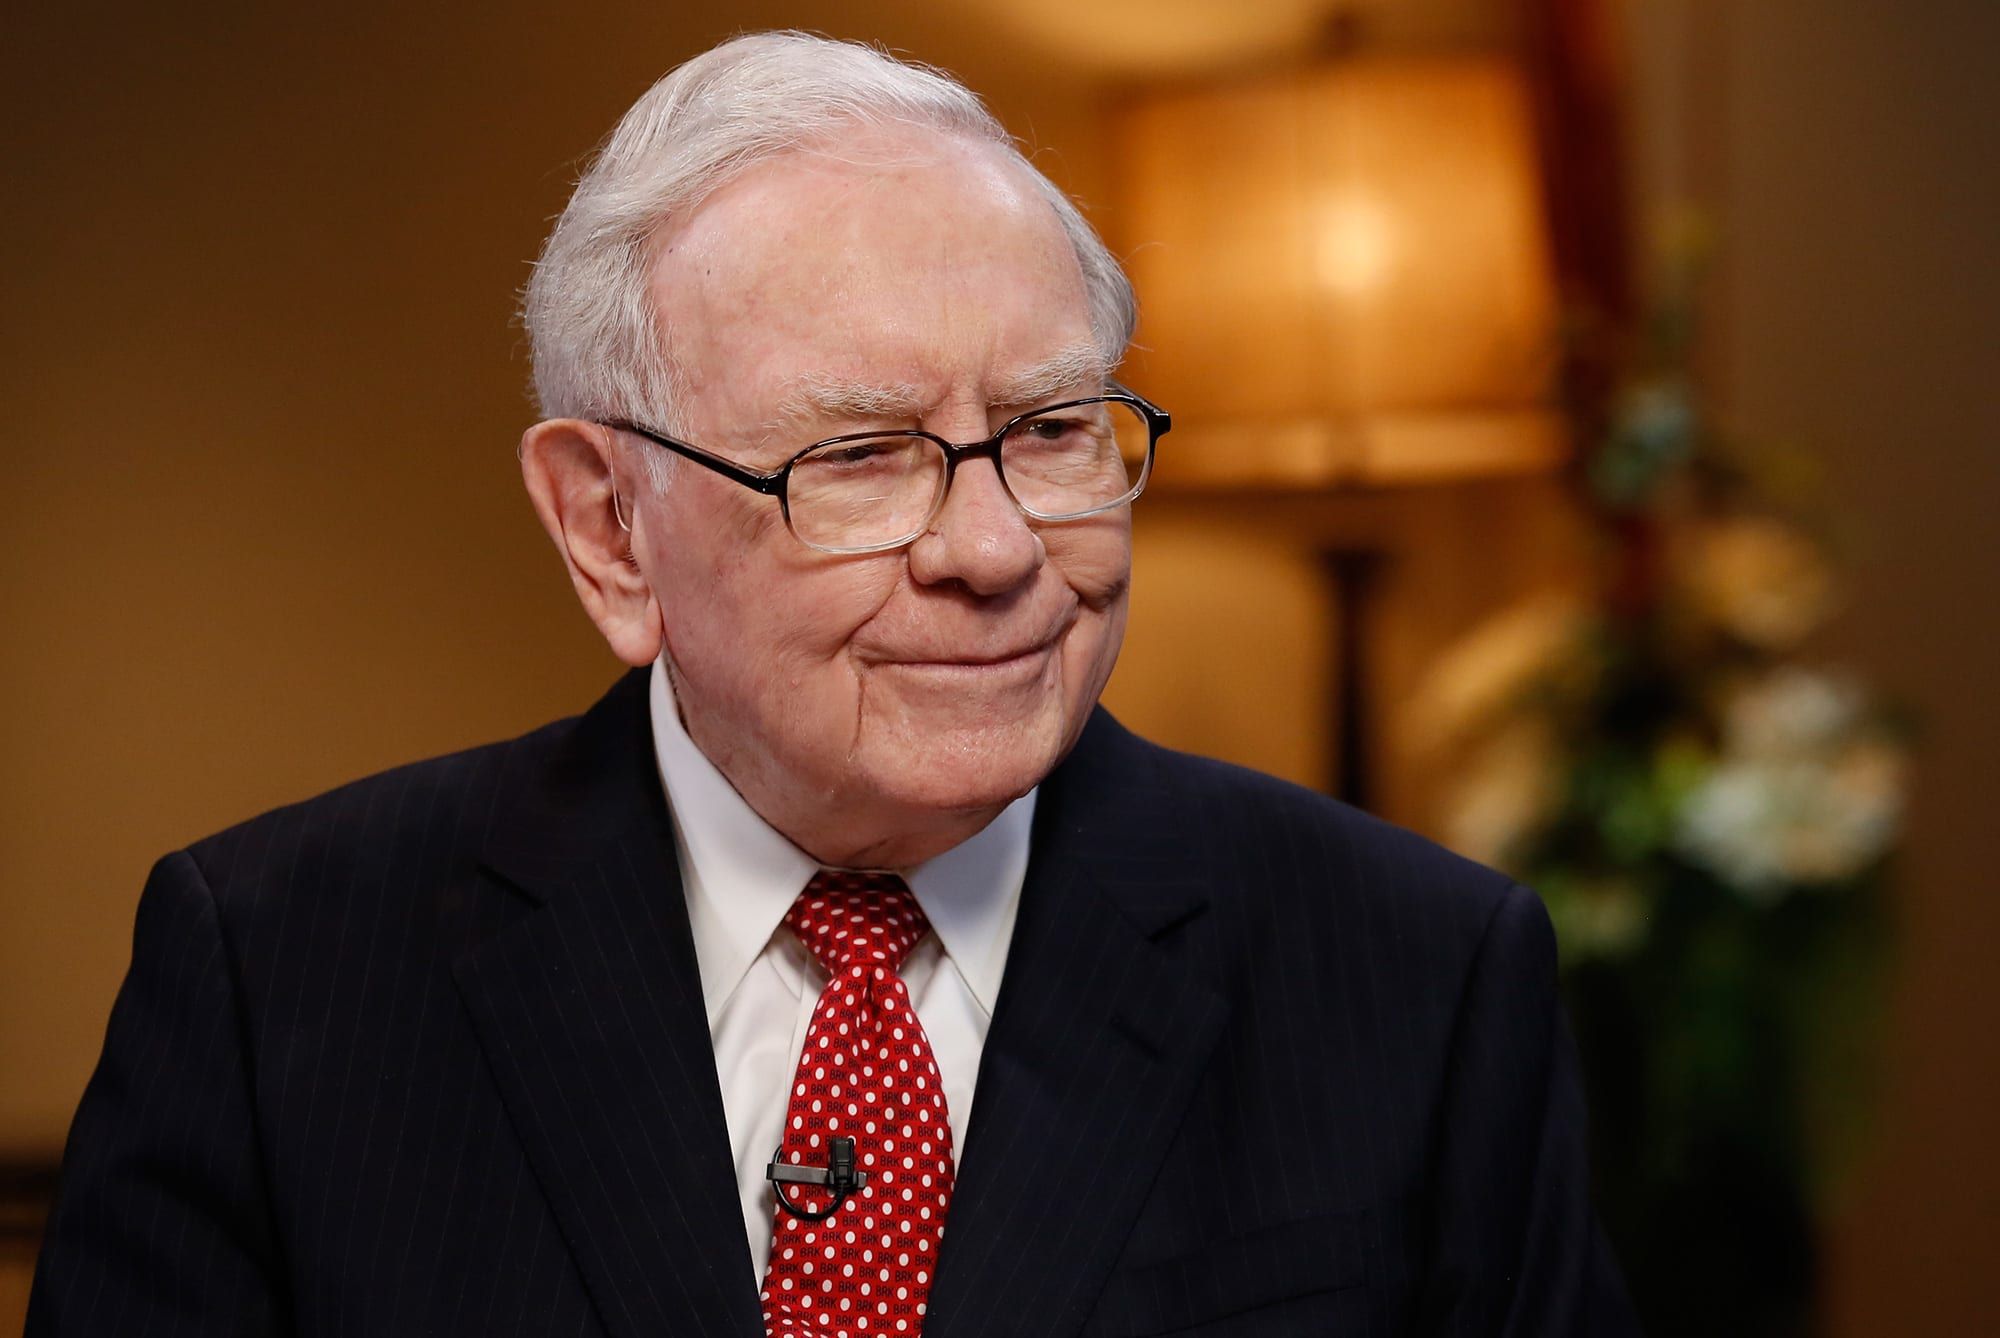 Warren Buffet stapt in goud